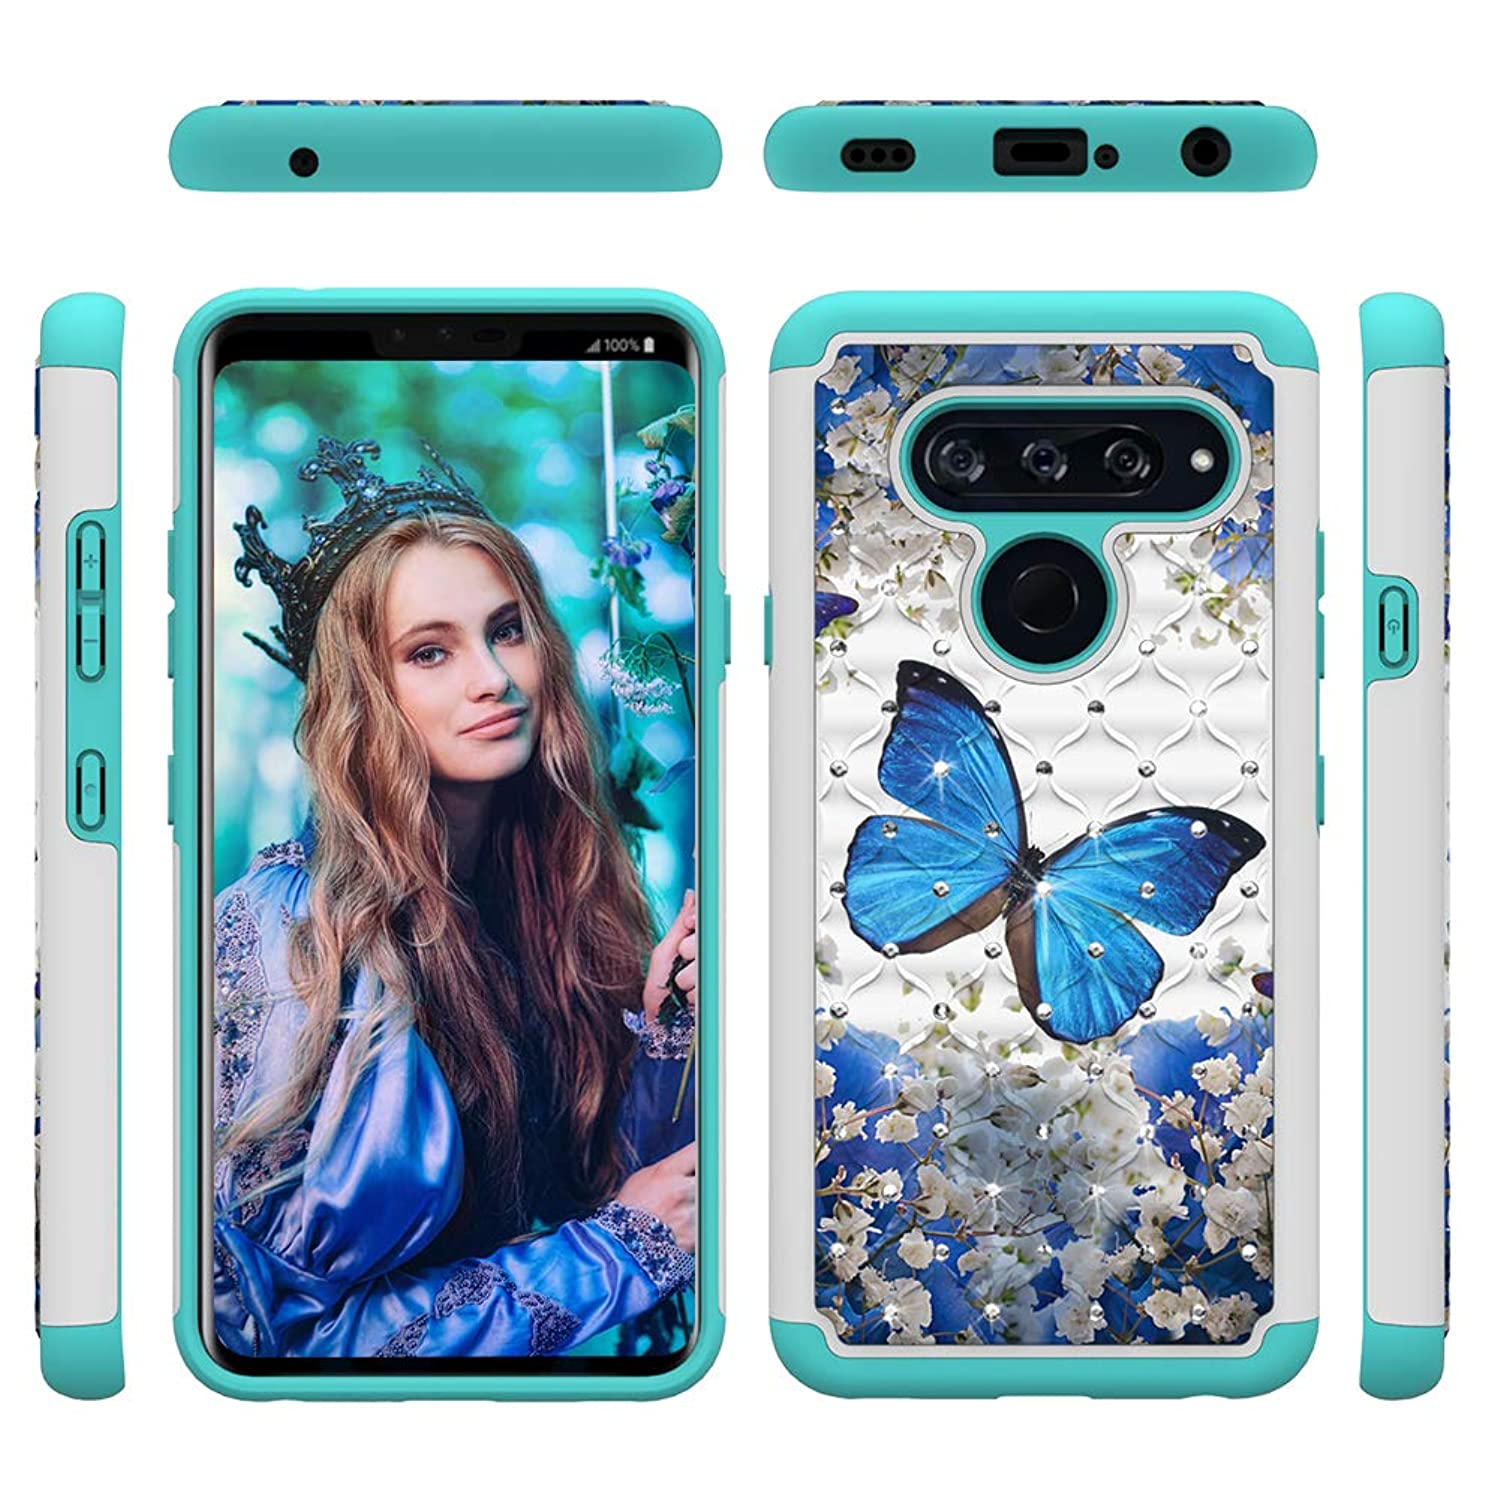 LG V40 ThinQ Case, LG V40 Case, MOLLYCOOCLE Stand Feature Diamond Glitter Blue Butterfly Double Layer Heavy Duty Design TPU Soft Bumper Hard PU Ultra Protect Cover for LG V40 ThinQ/LG V40